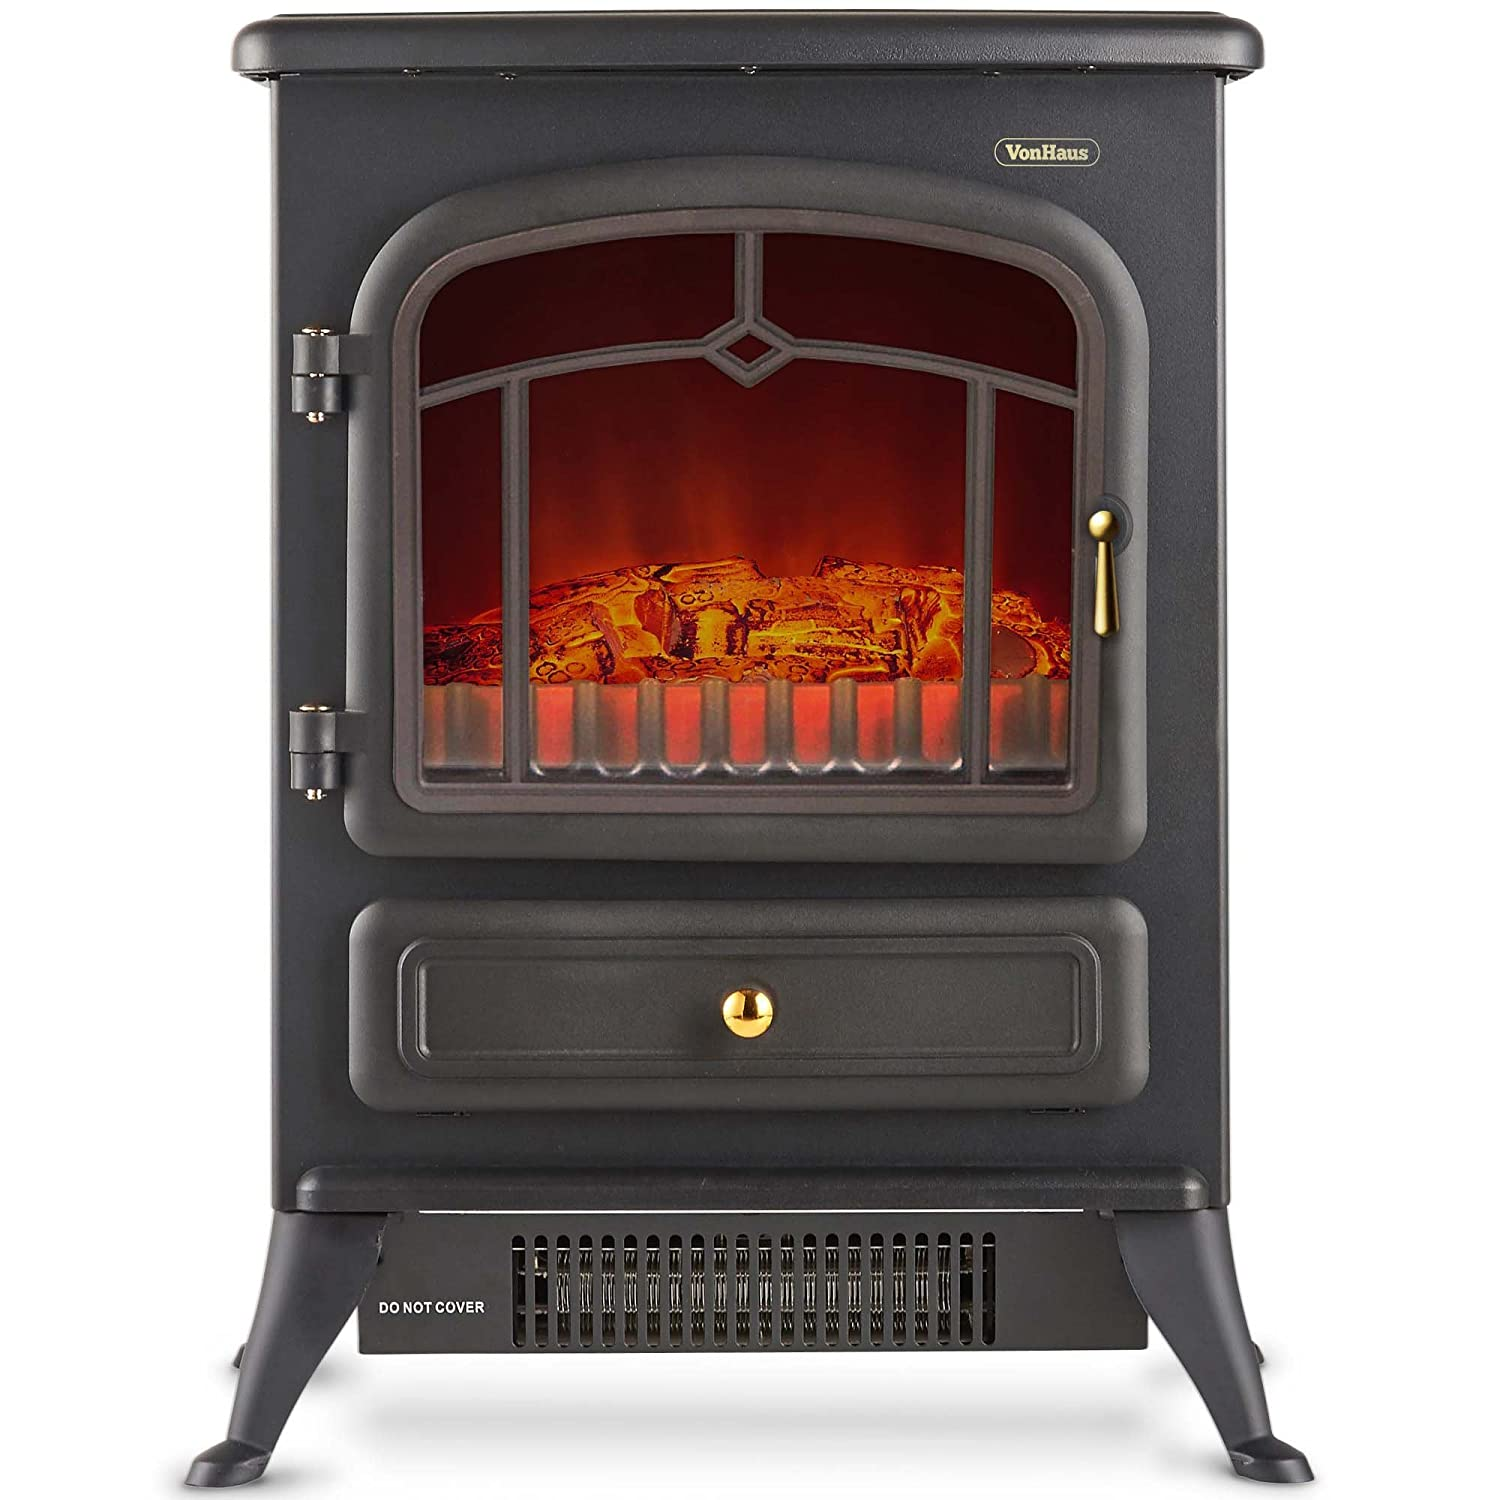 VonHaus Electric Stove Heater Fireplace with Realistic Log Wood Burning  Flame Effect and 2 Heat Settings - Portable Free Standing Space Heater  1500W -